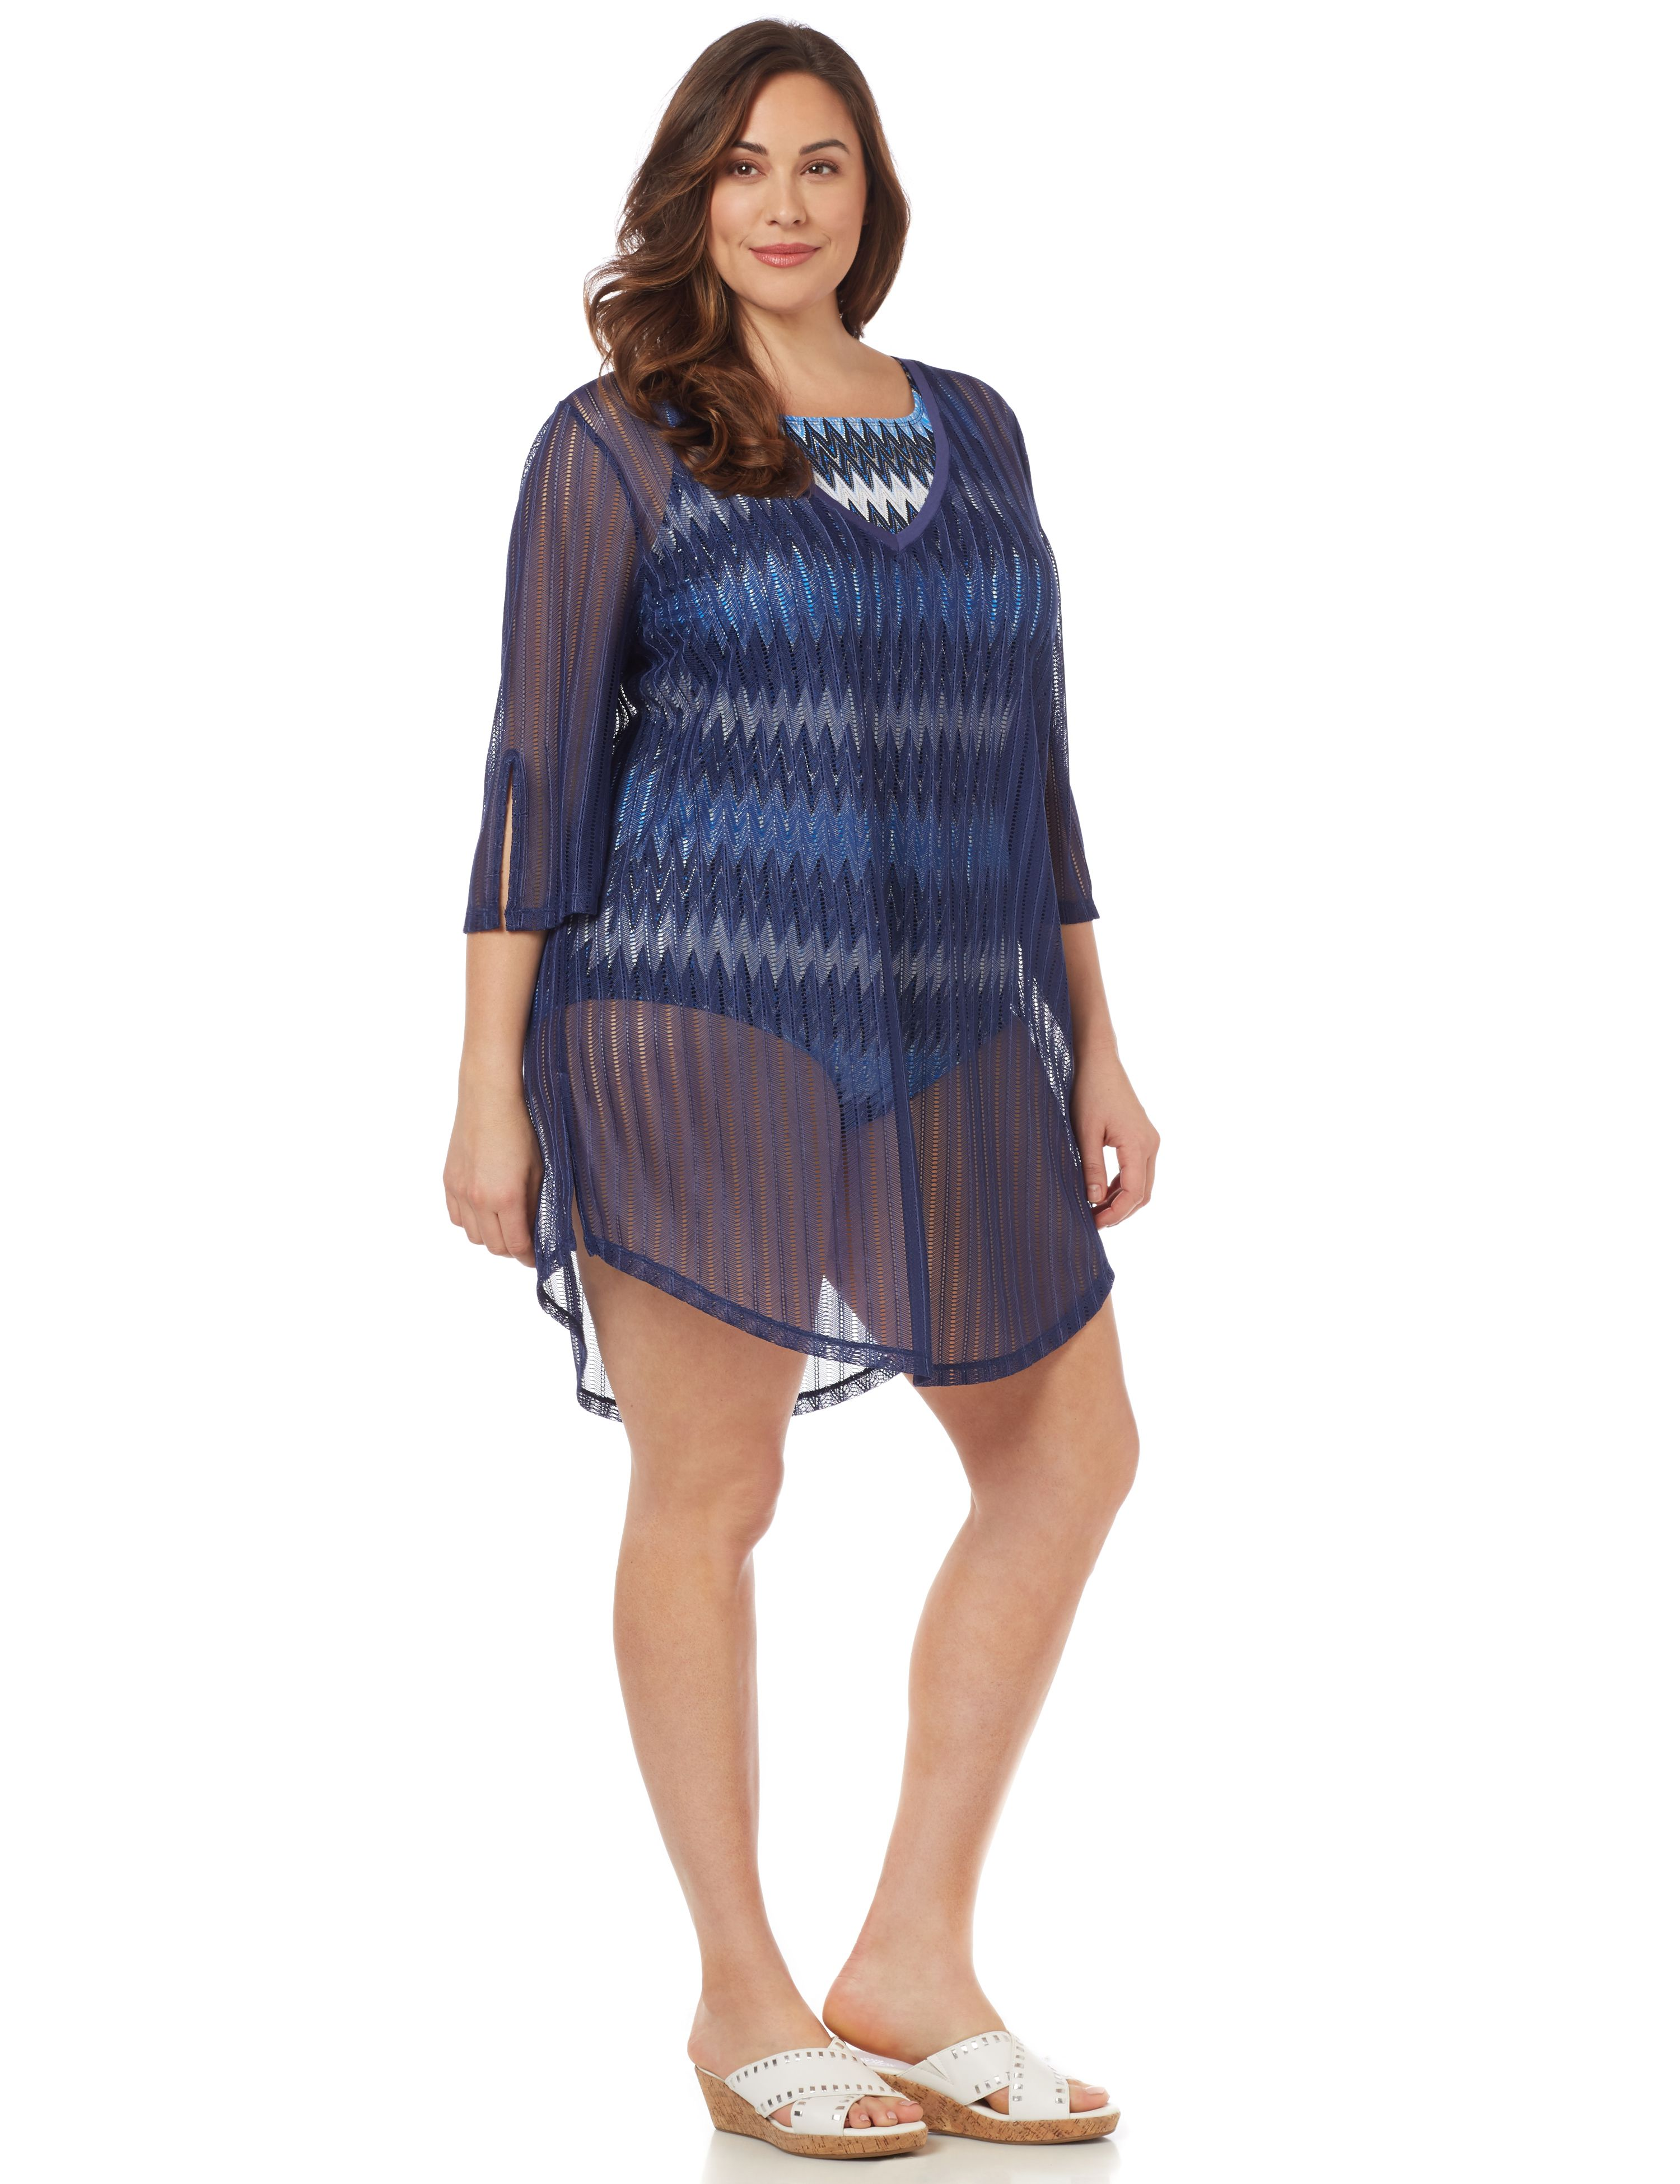 Crochet Cover-Up 1088500- Crochet Cover Up - 38